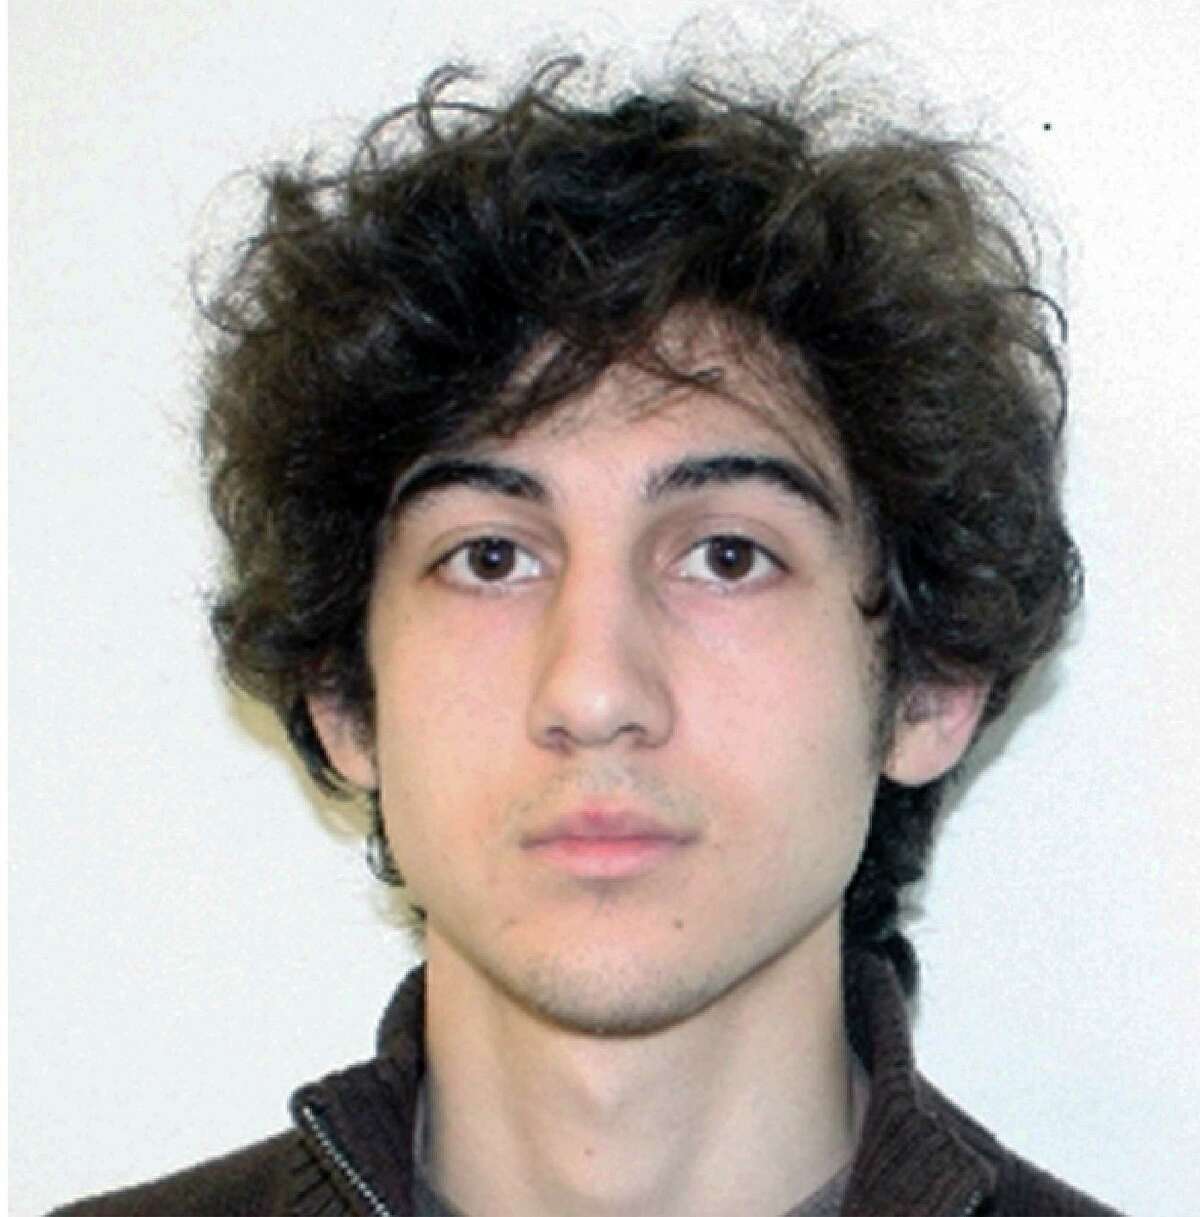 Boston Marathon bombing defendant Dzhokhar Tsarnaev sought to have his trial moved and postponed. A judge rejected his request.